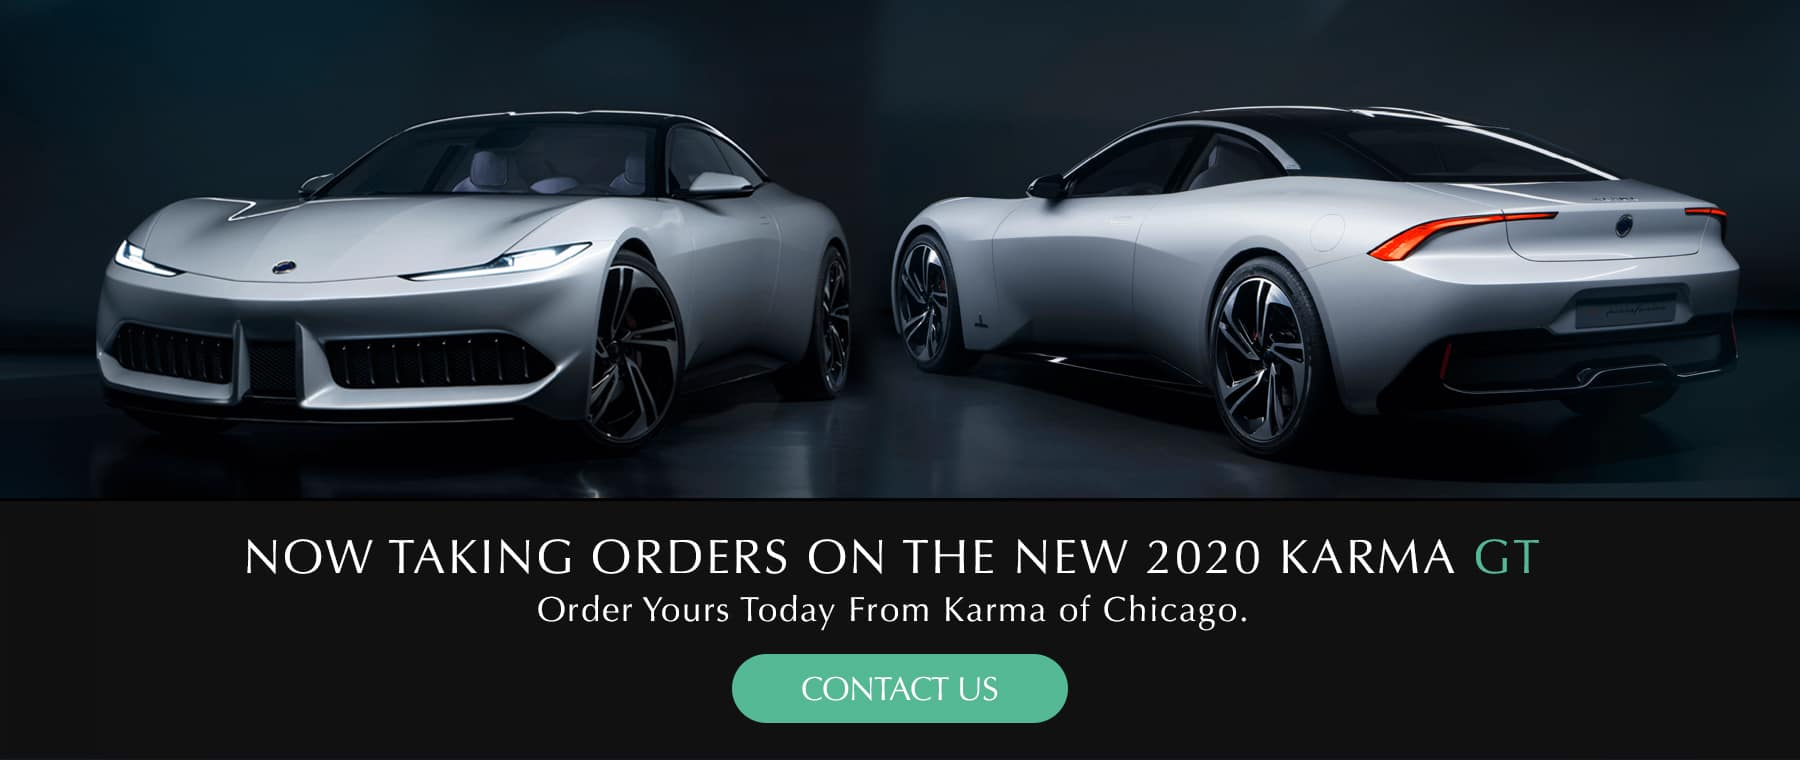 Now Taking orders to the new 2020 Karma GT